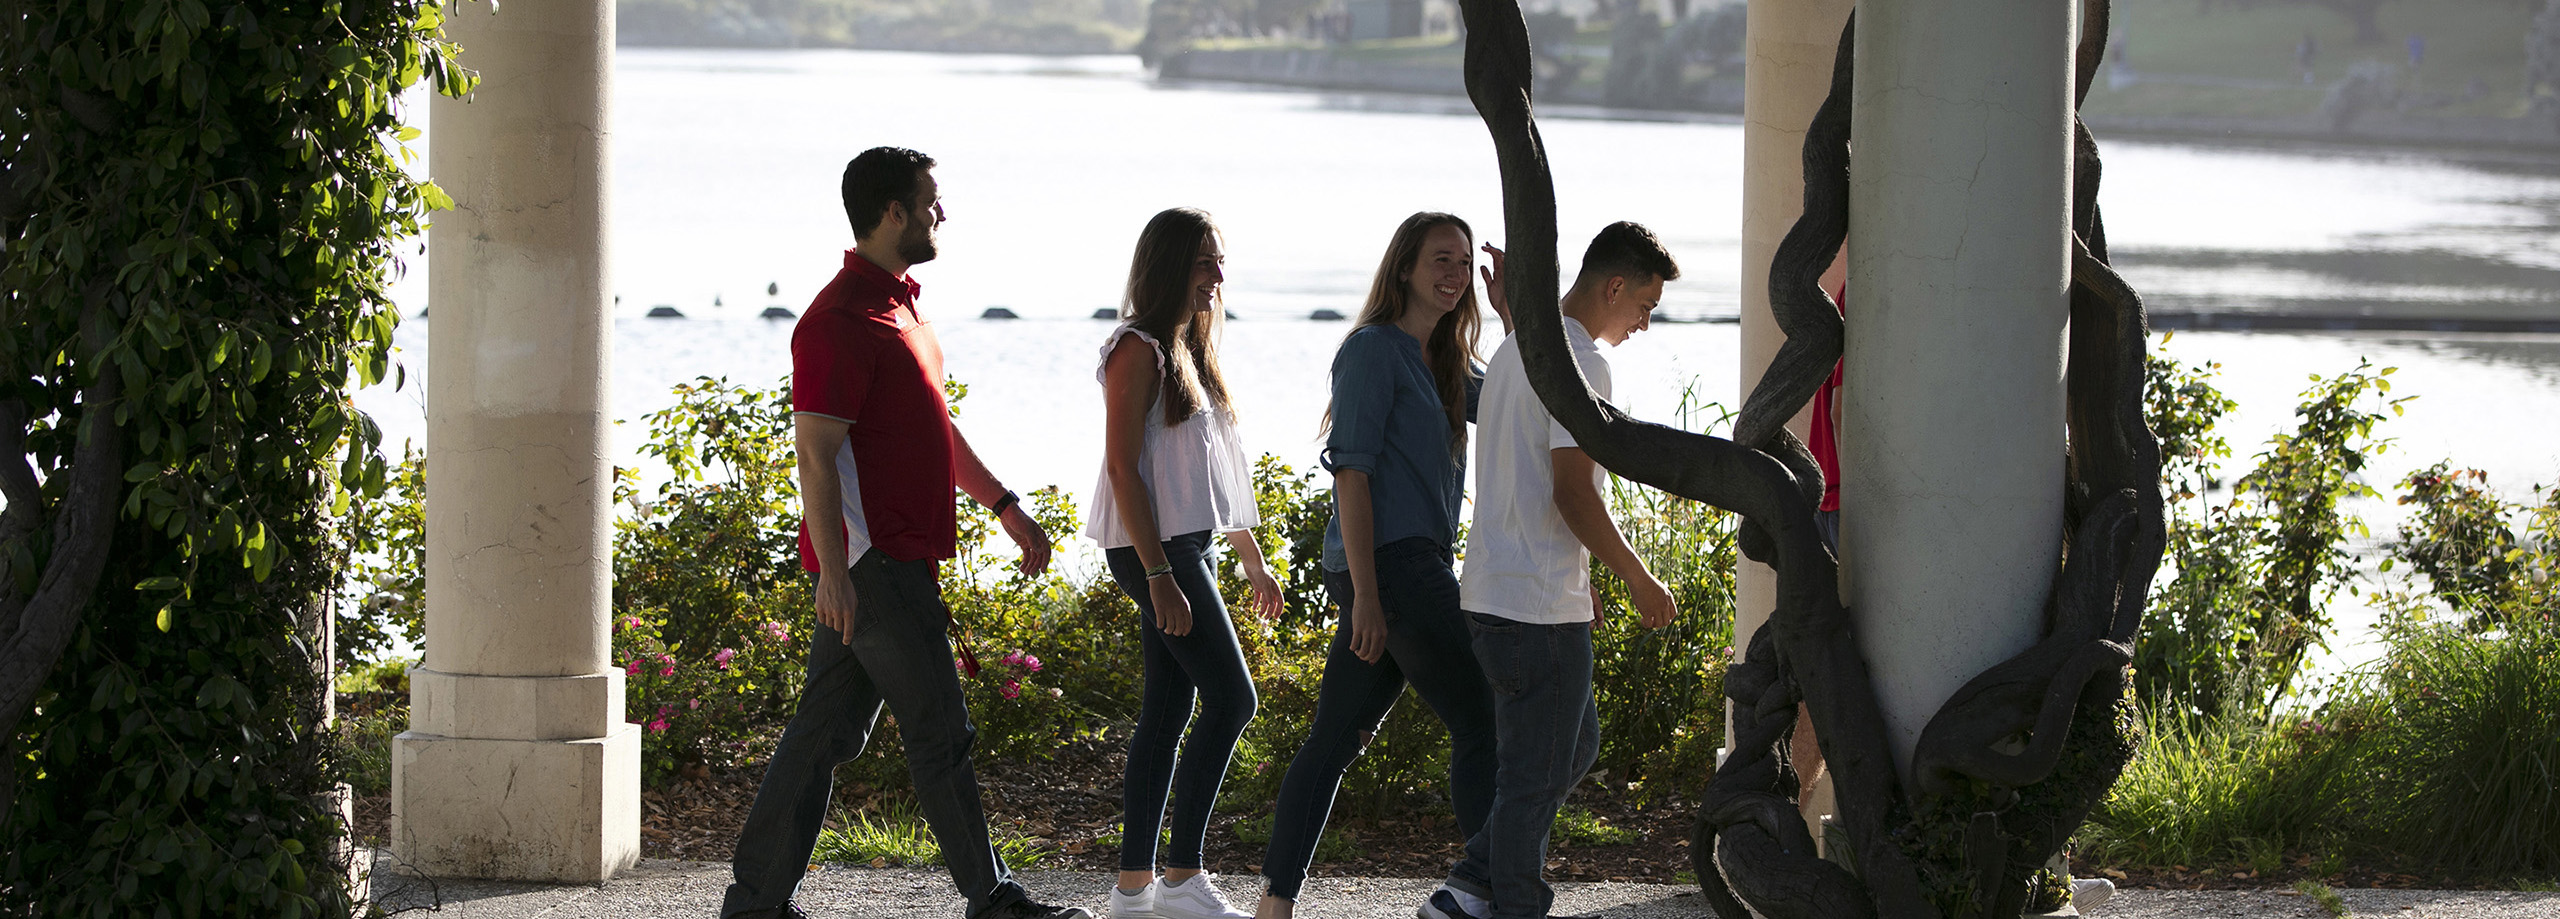 group of HNU students walking on campus